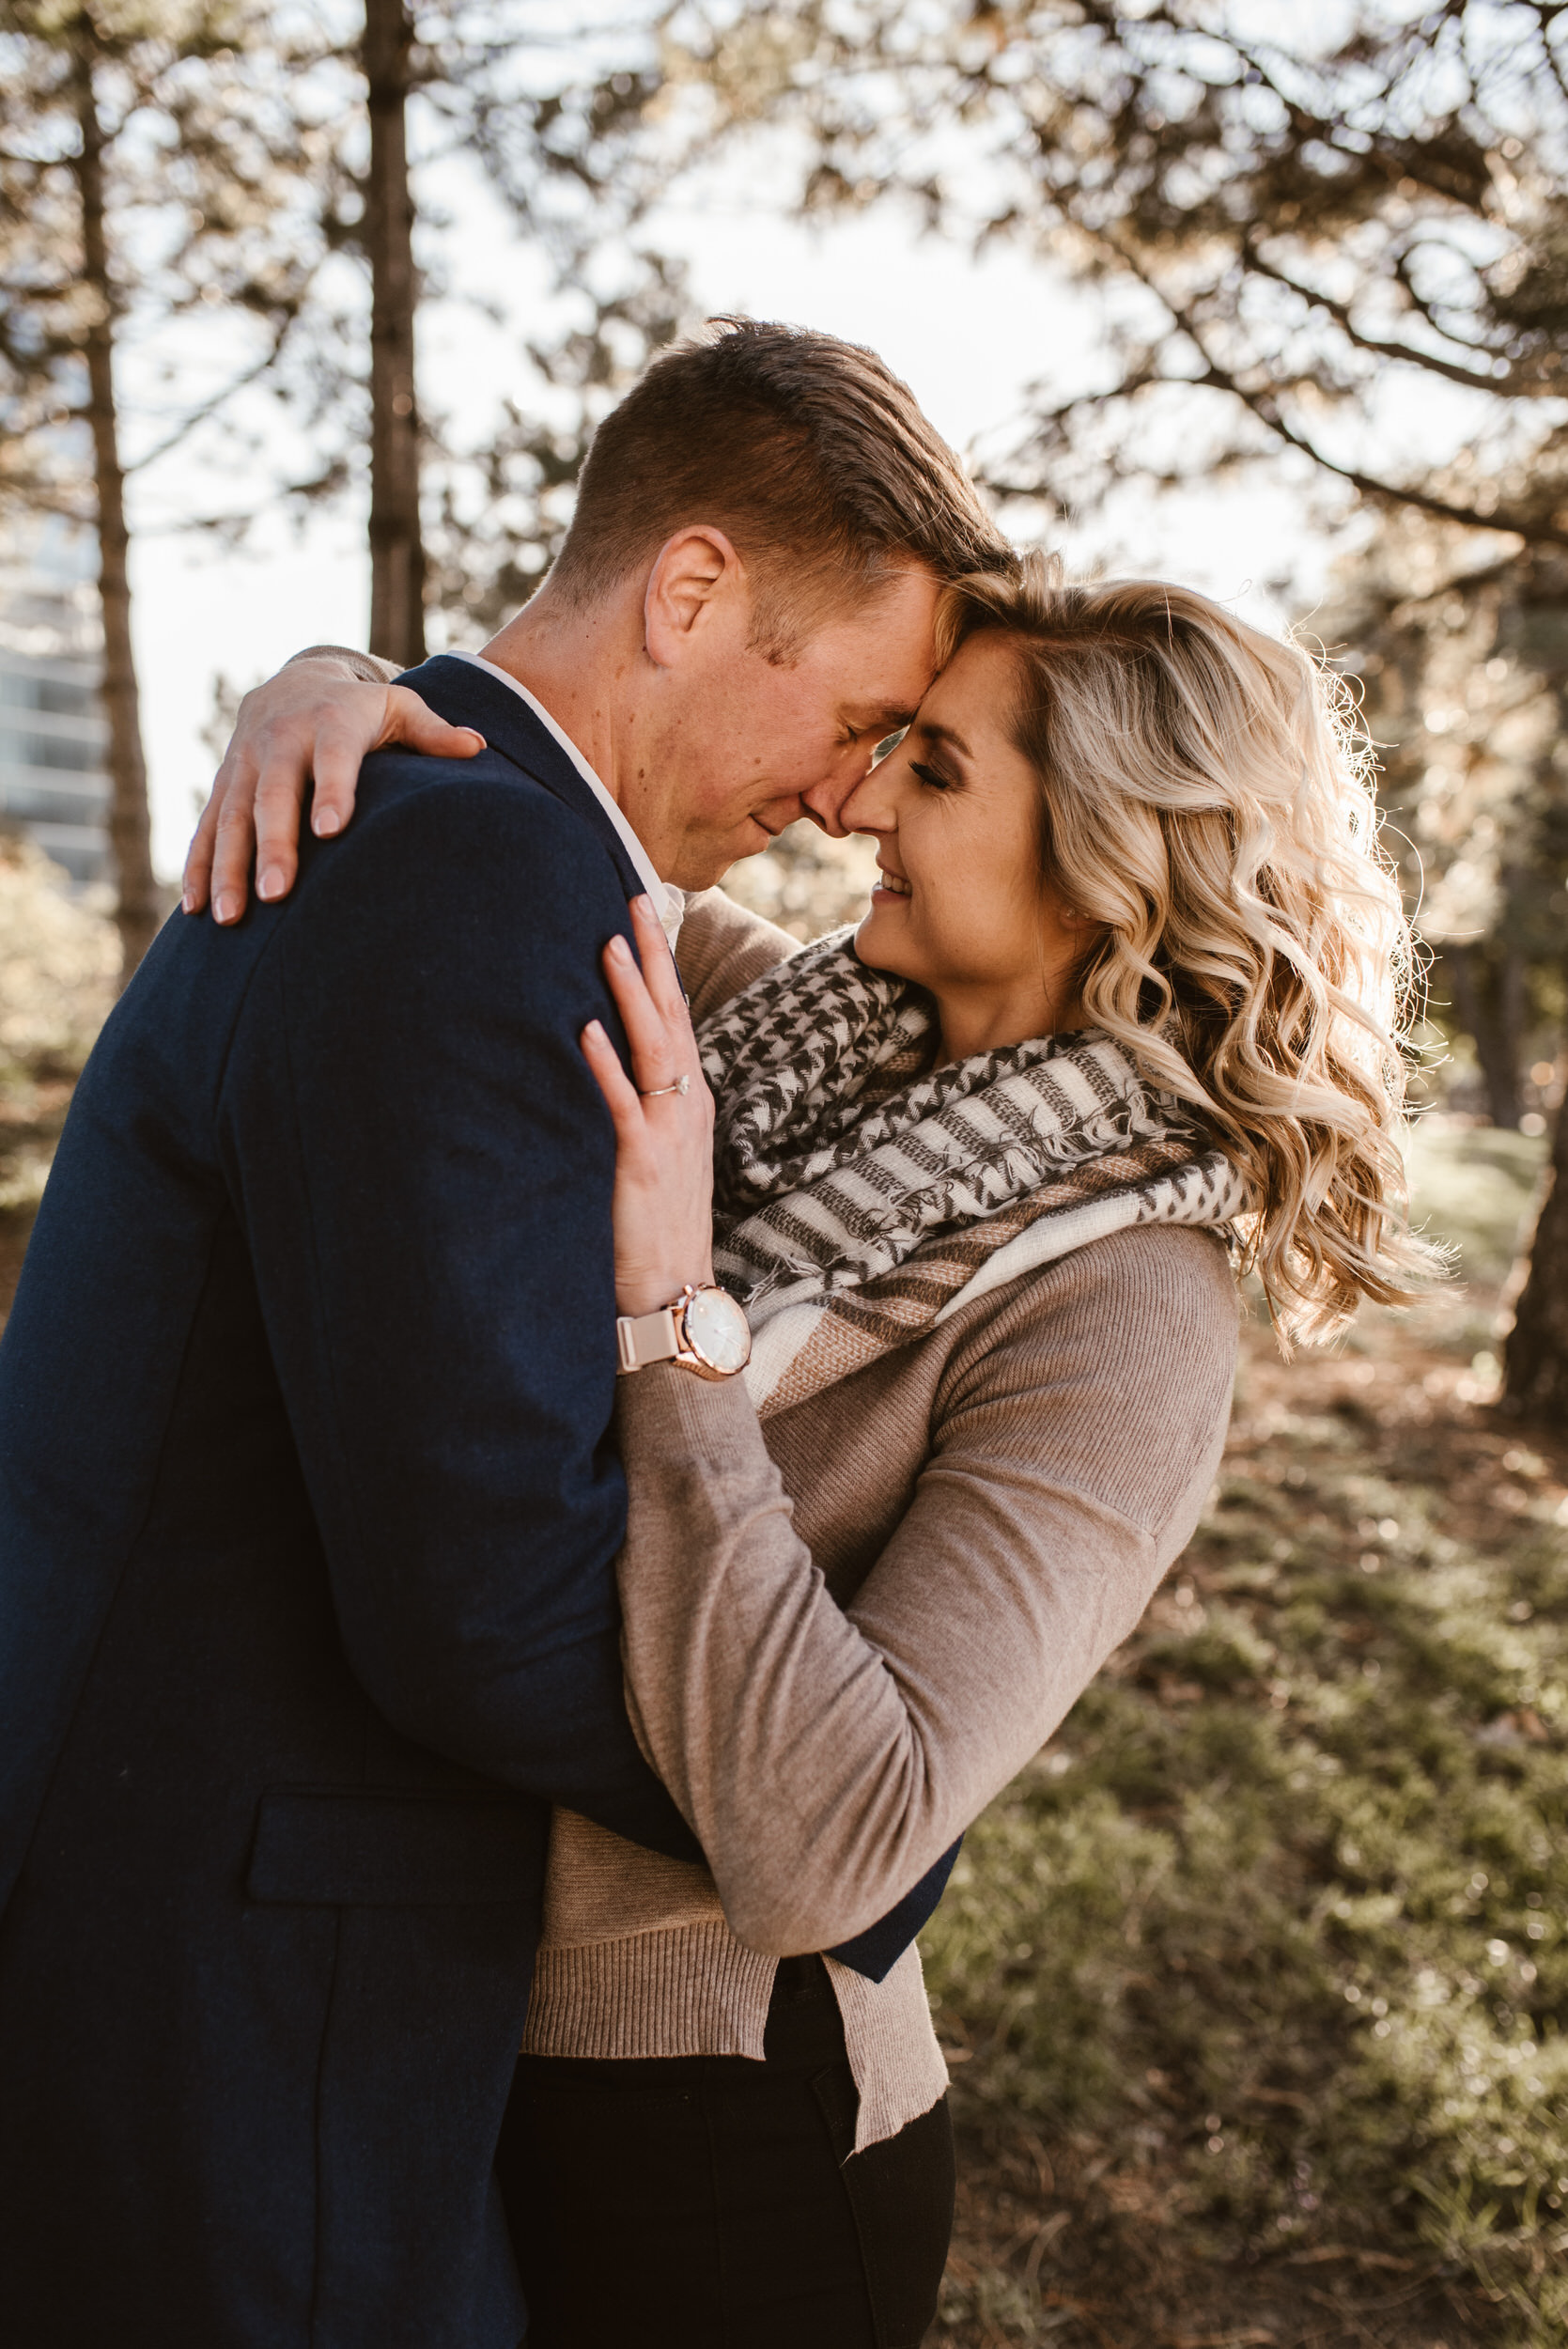 Gene Leahy Mall Omaha Engagement Session Kaylie Sirek Photography 12.jpg